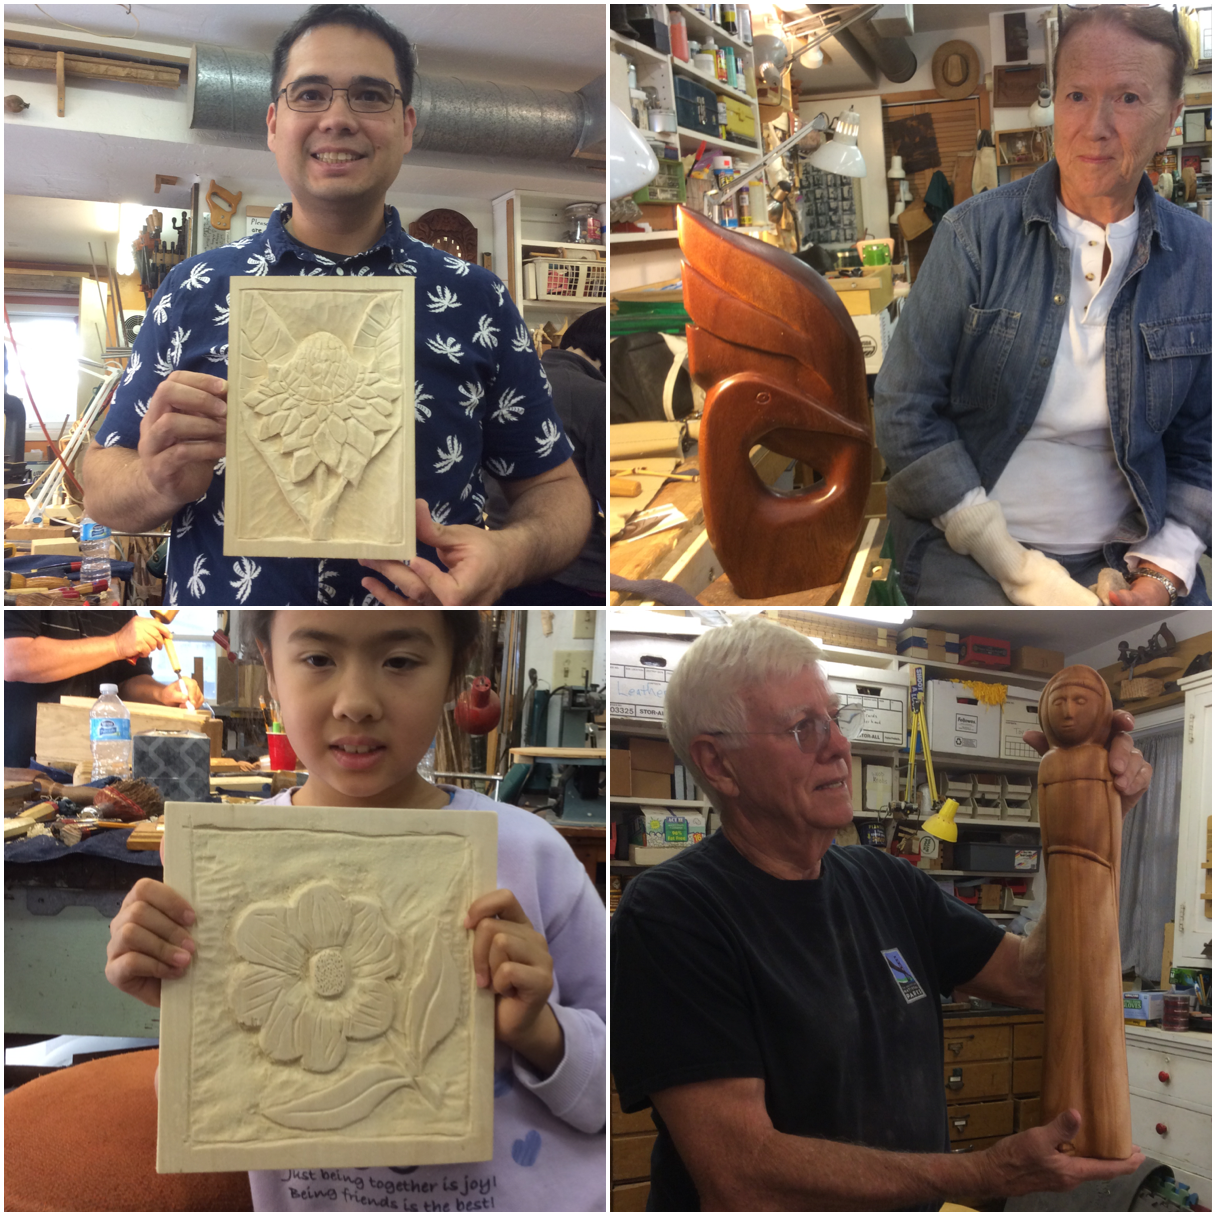 Here are some finished projects from the past month.  George and Amelia both finished up carved basswood flowers.  Dave finished his lovely St. Francis sculpture that was inspired by a Benny Bufano piece.  Rise completed this stylized bird carved from African Mahogany.  It finished to such a lovely sheen but I think we all agreed that African Mahogany is REALLY difficult to carved and to sand.  Best left for cabinetry rather than carving.